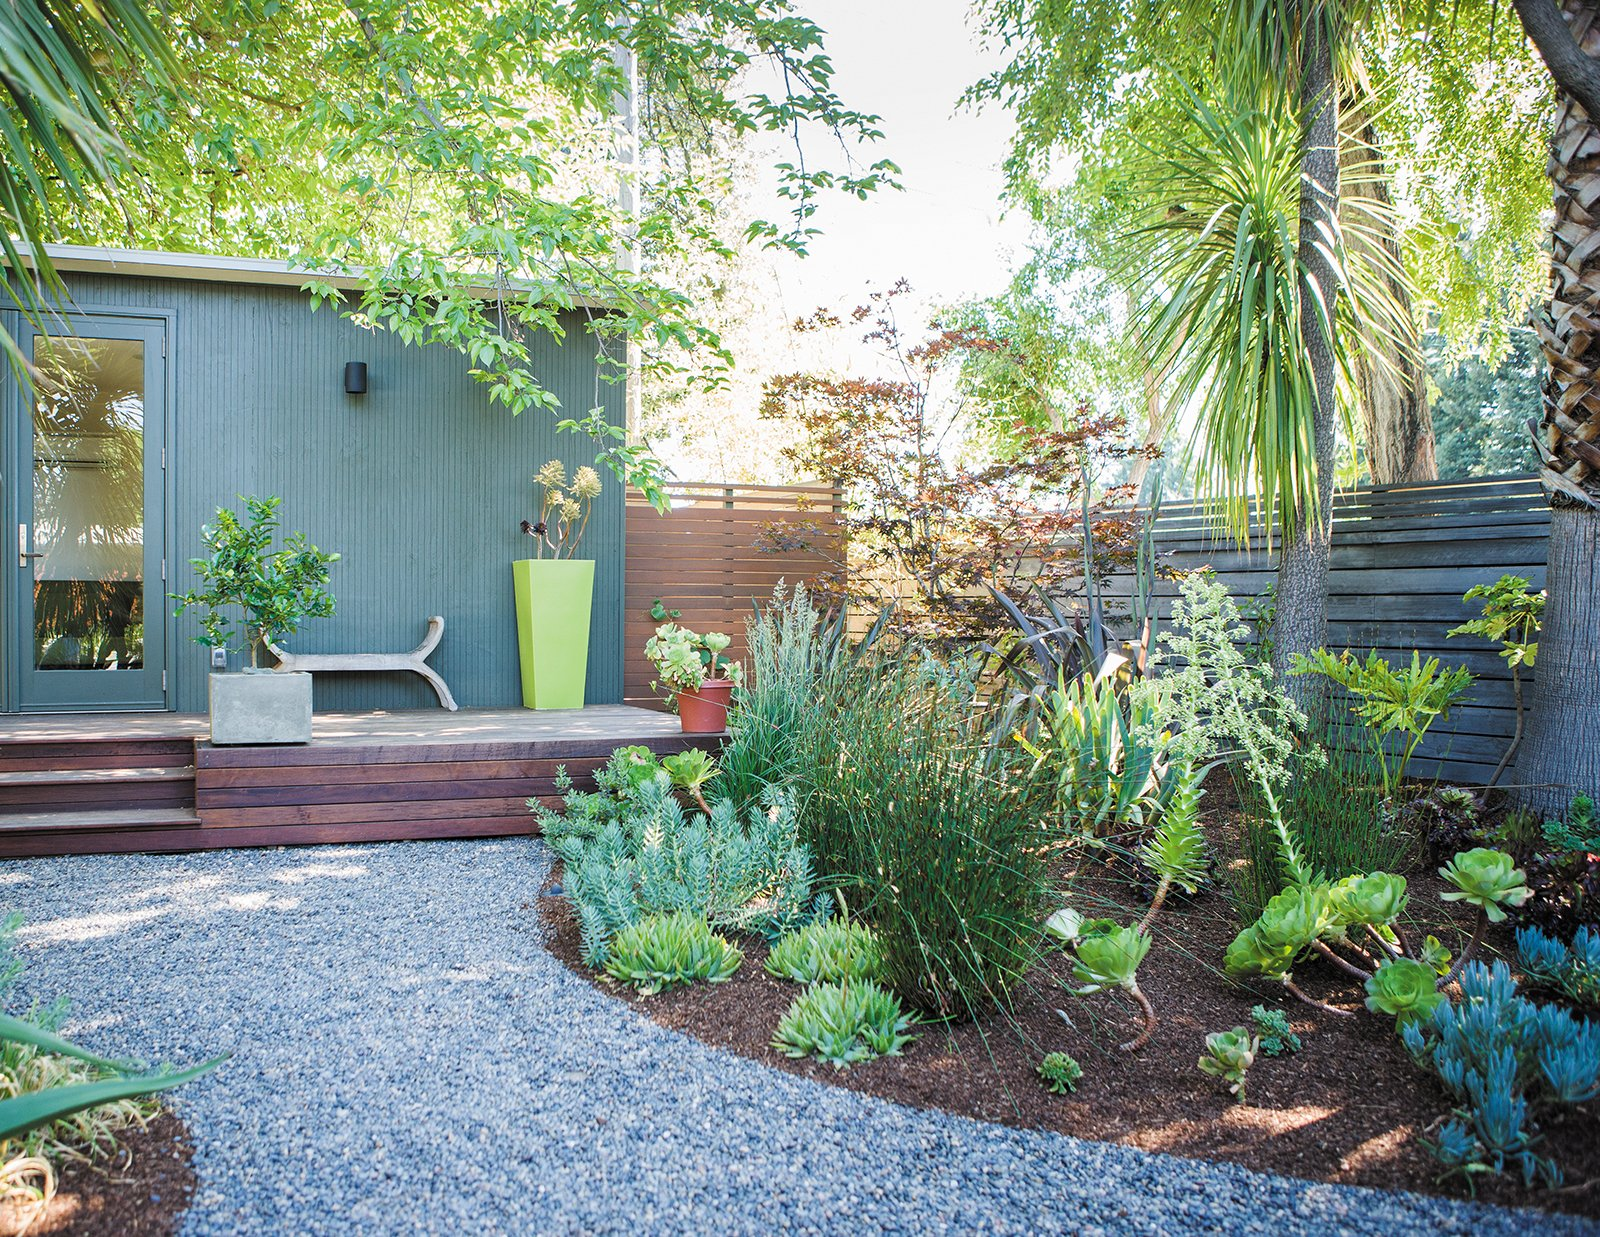 Photo 1 of 7 in How to Make Your Tiny Yard Feel Spacious